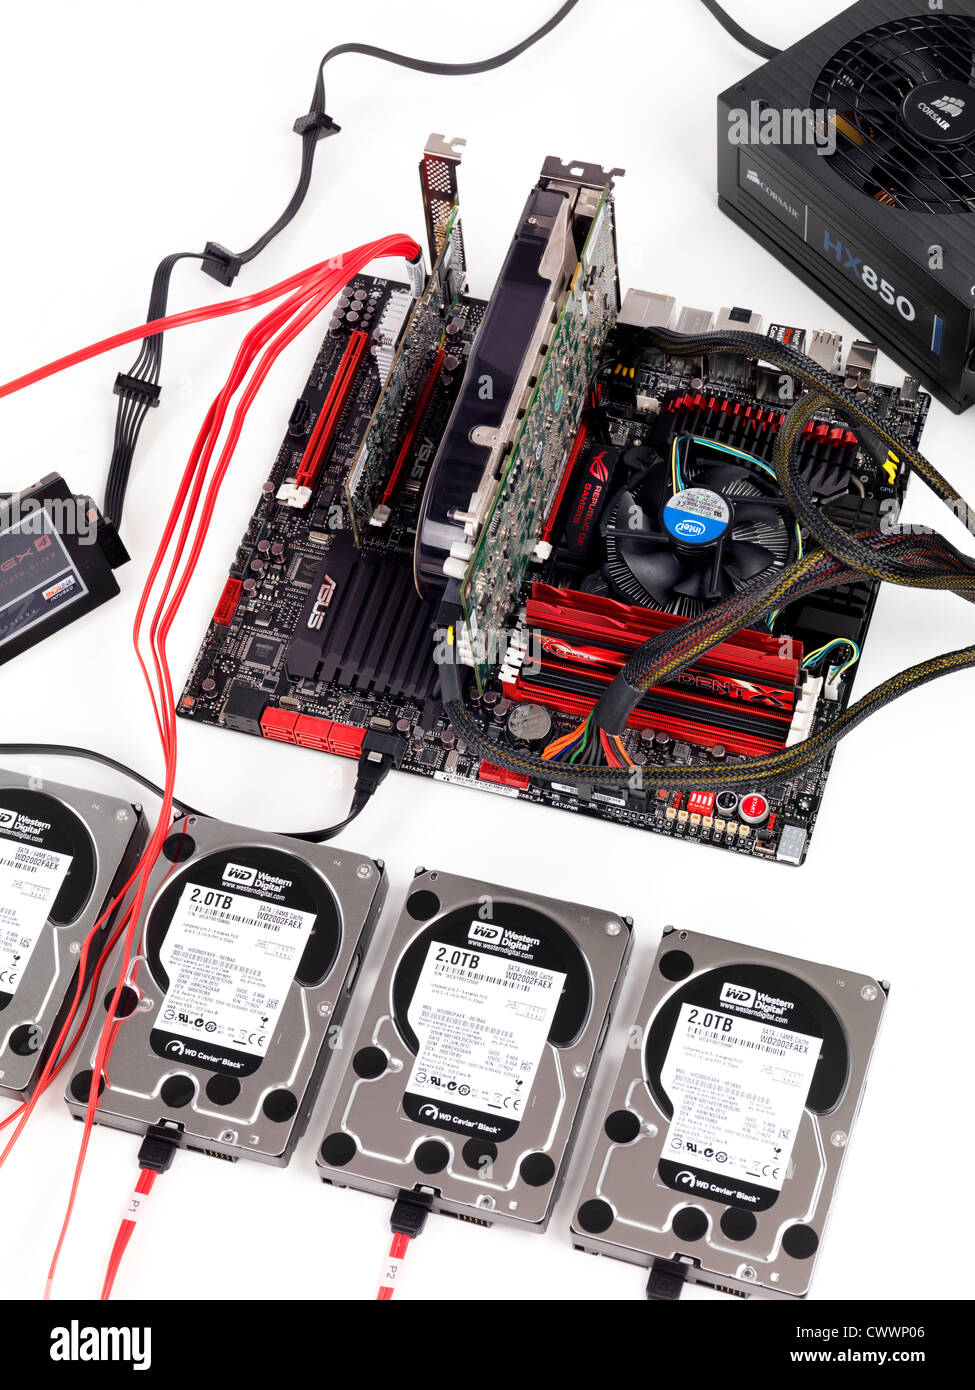 Computer motherboard with four hard drives connected to a RAID controller - Stock Image